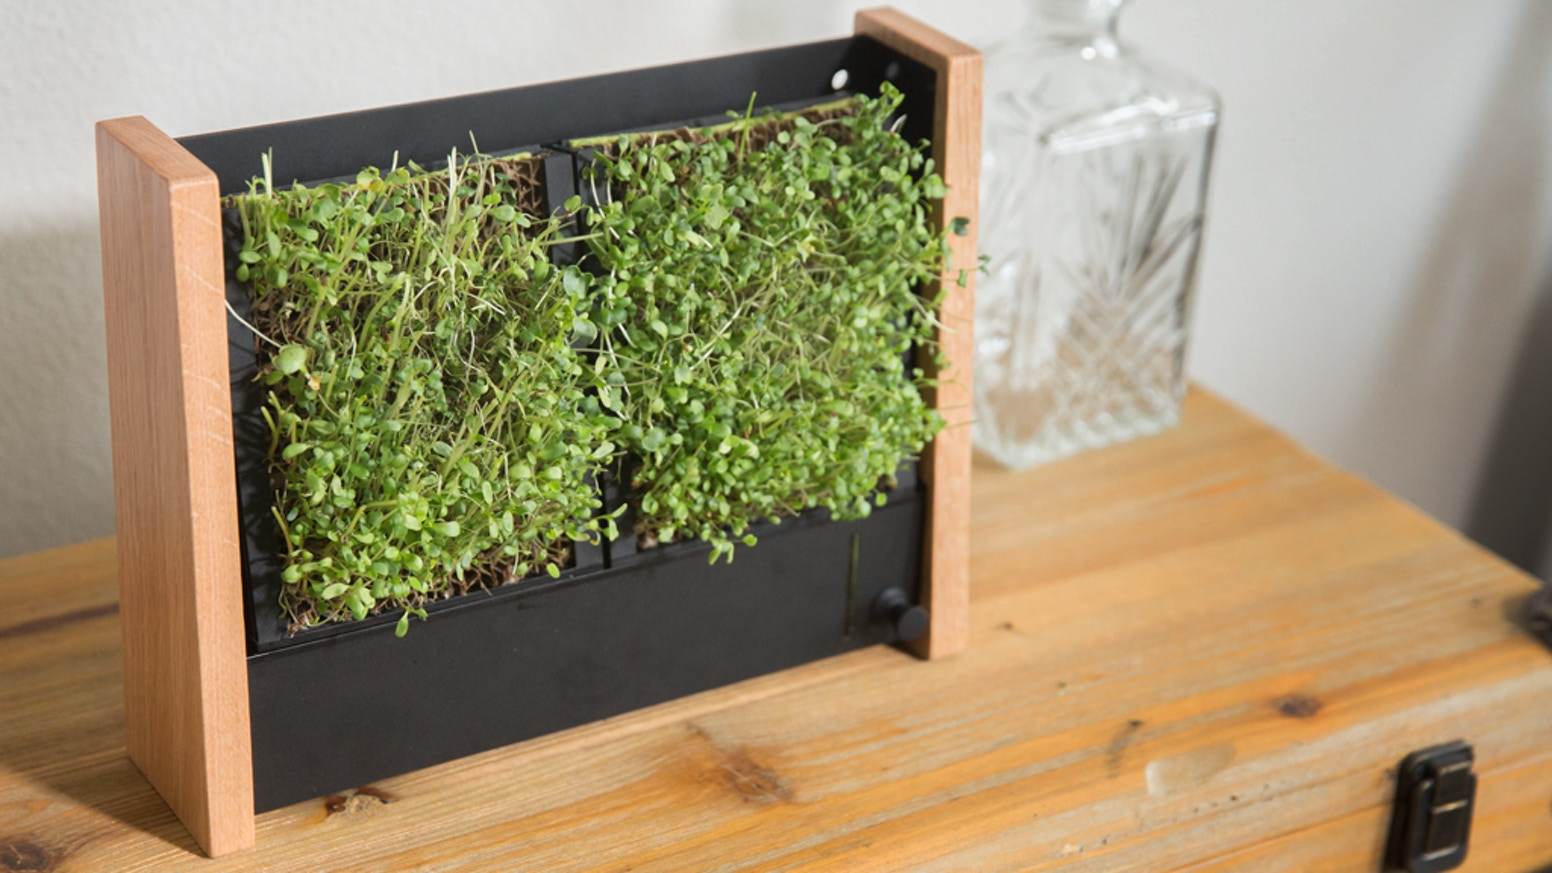 COMPACT Low Maintenance Vertical Garden that grows veggies 10x more NUTRITIOUS or Succulents easily and affordably.